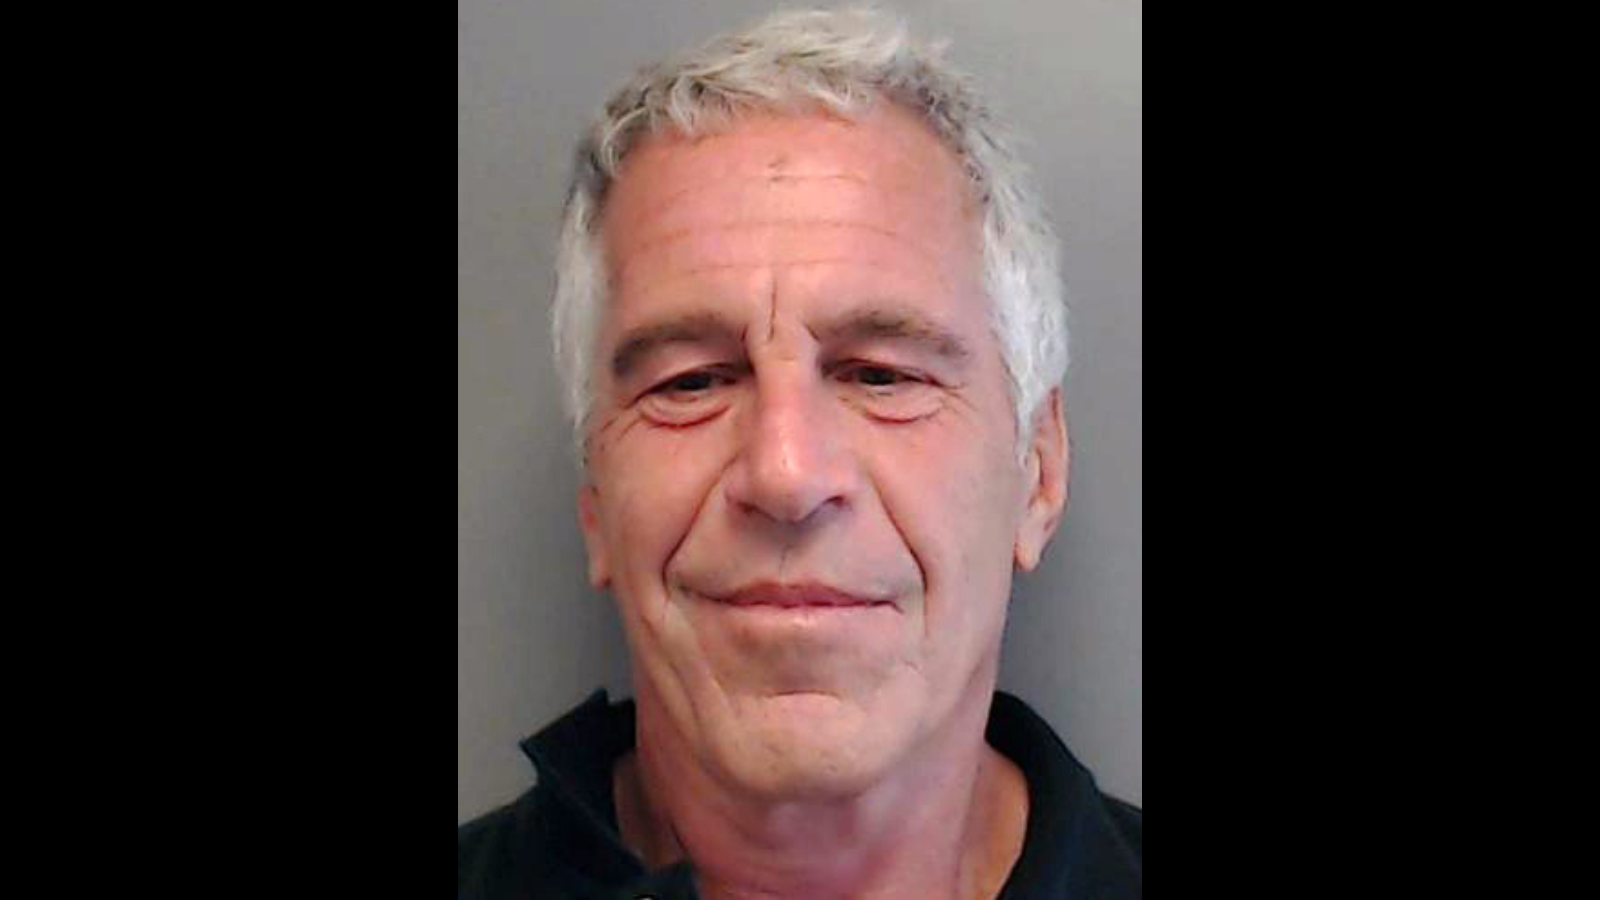 Epstein's Modeling Scout Pal Jean-Luc Brunel Detained on Suspicion of Rape and Trafficking